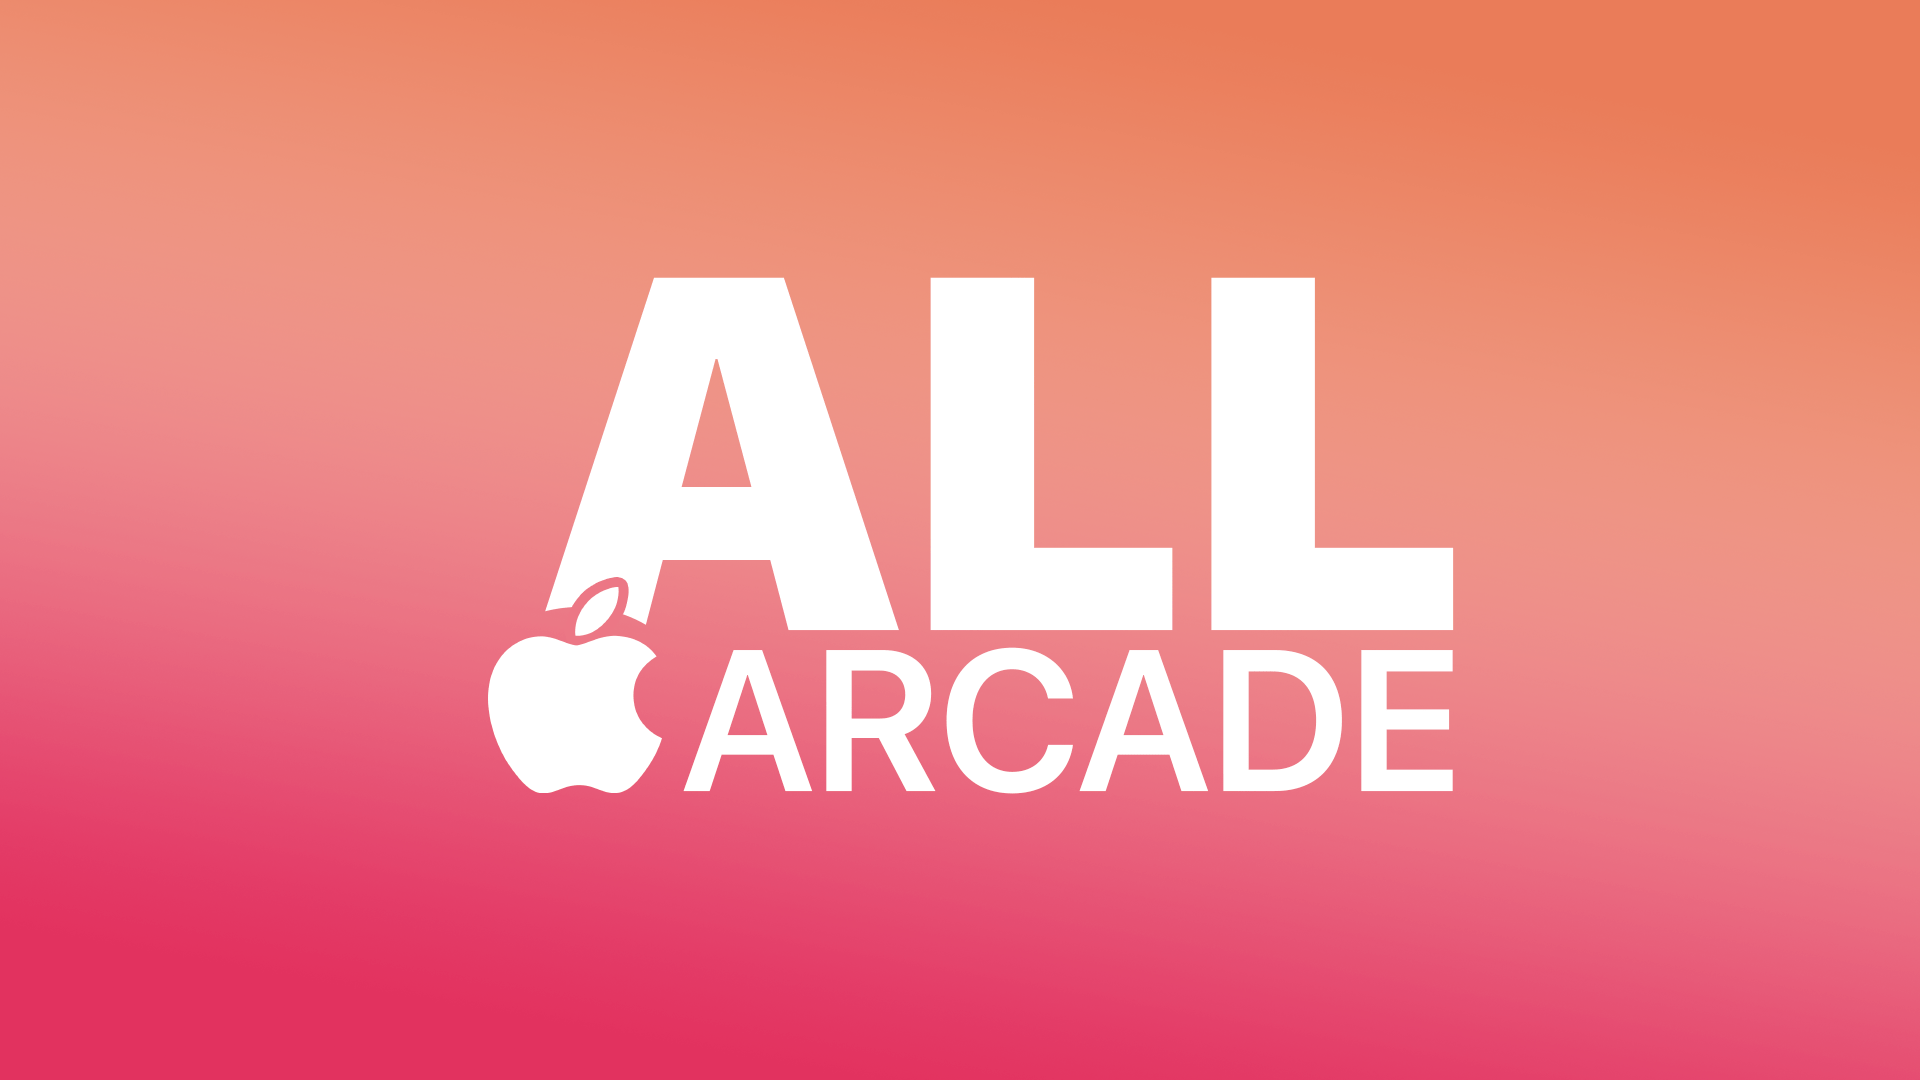 Apple Arcade: The complete list of games for iPhone, iPad, Mac and Apple TV - CNET